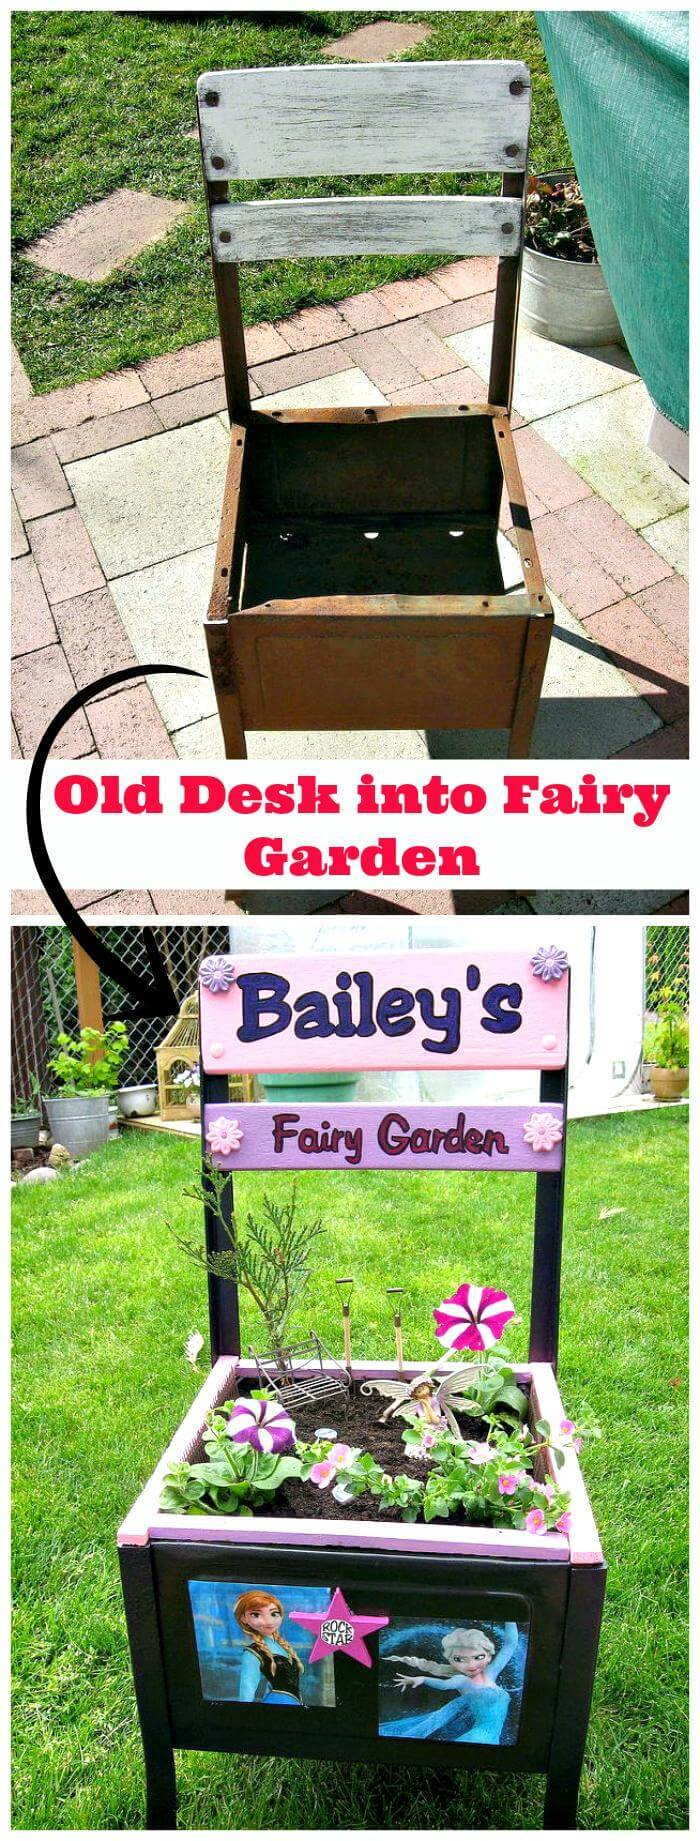 Old Desk into Fairy Garden